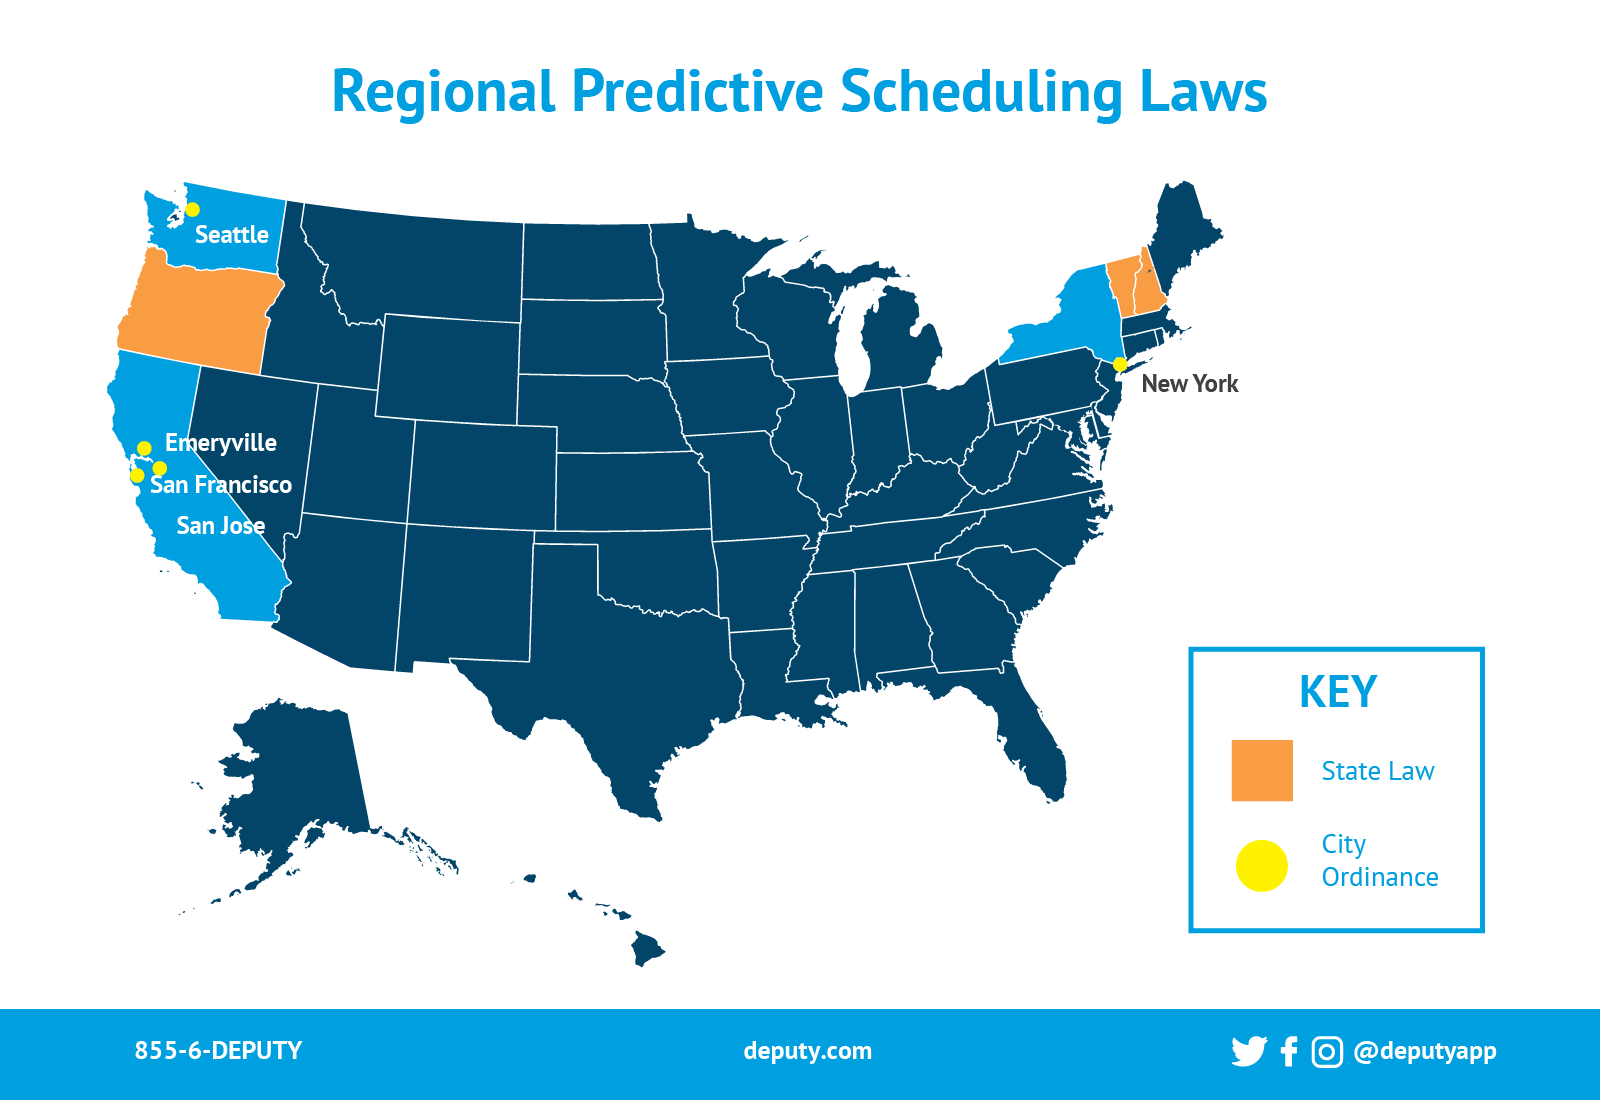 Regional Predictive Scheduling laws infographic-Deputy